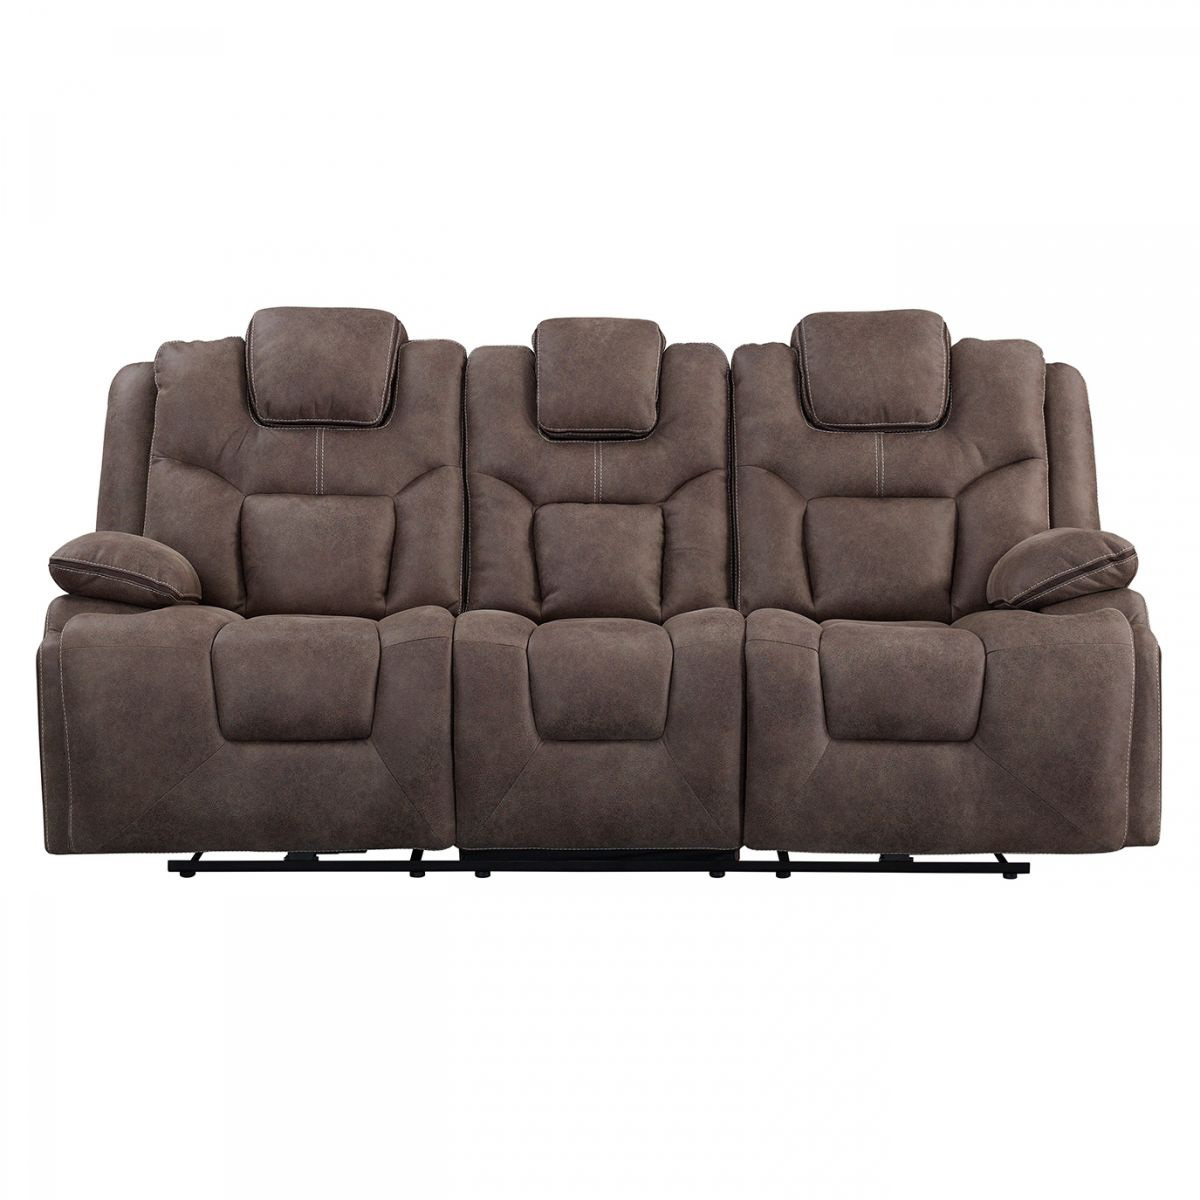 Sofa Relax Con Usb Atlantis Beige Power Reclining Sofa With Bluetooth